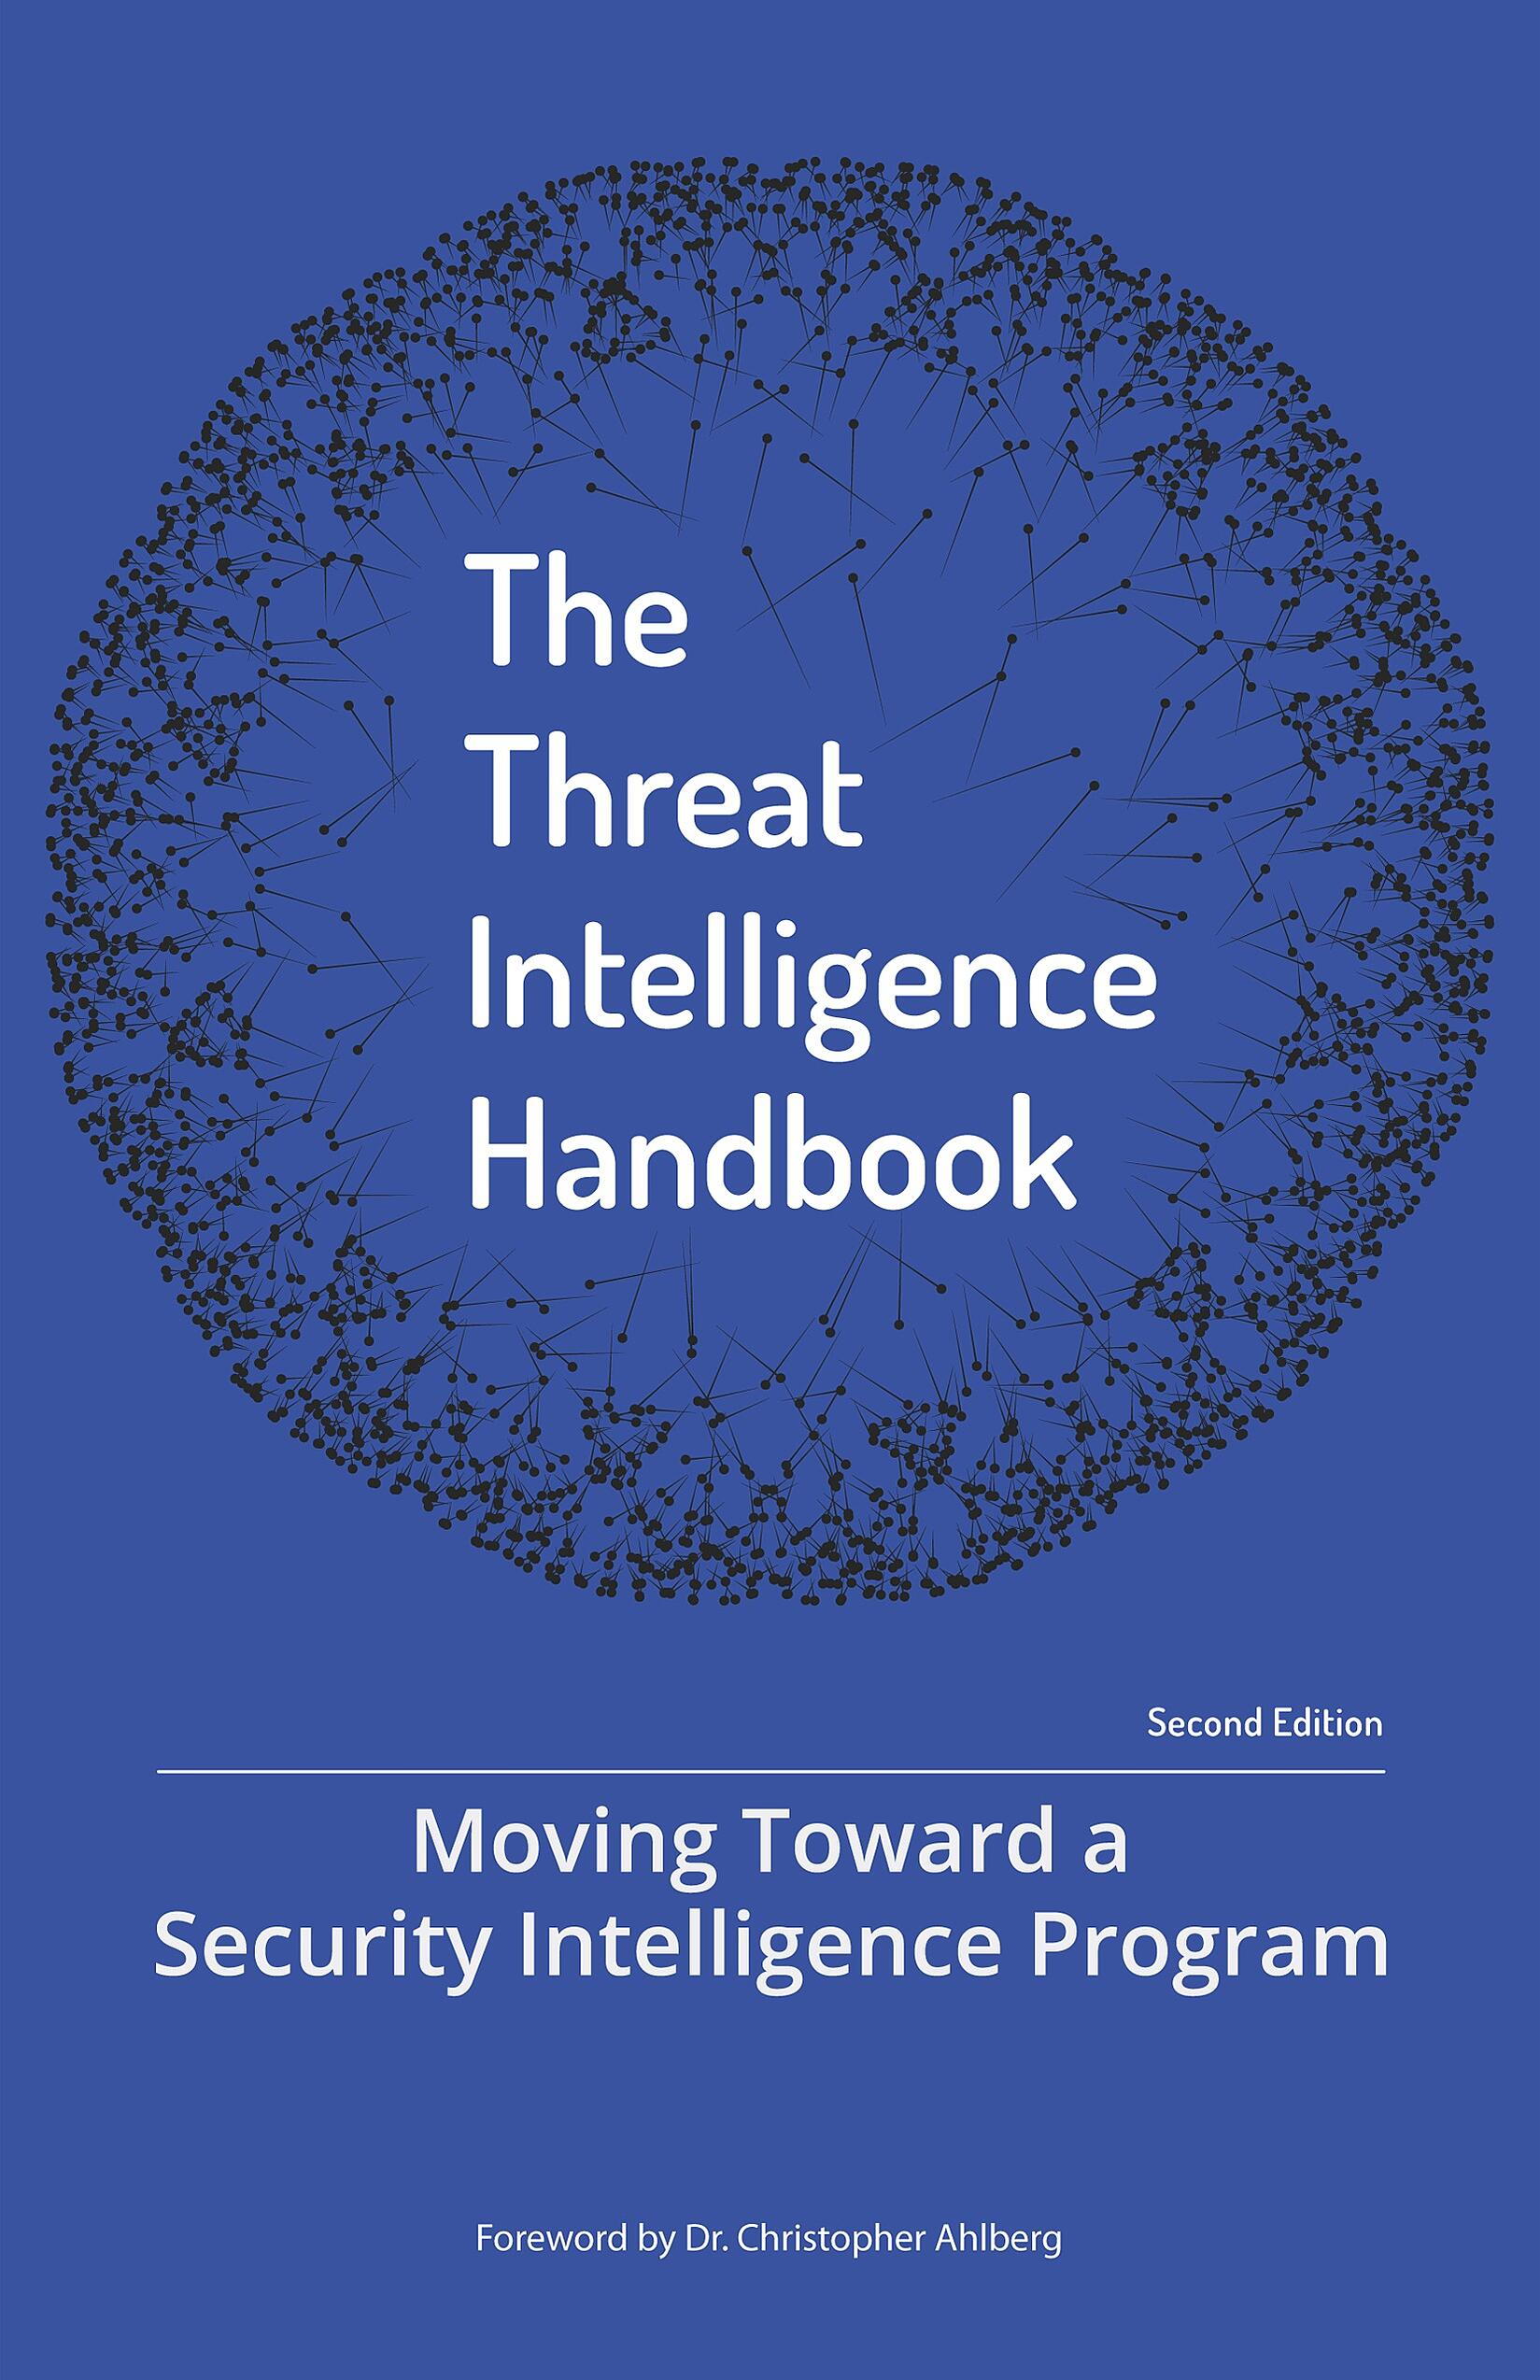 threat-intelligence-handbook-second-edition-cover